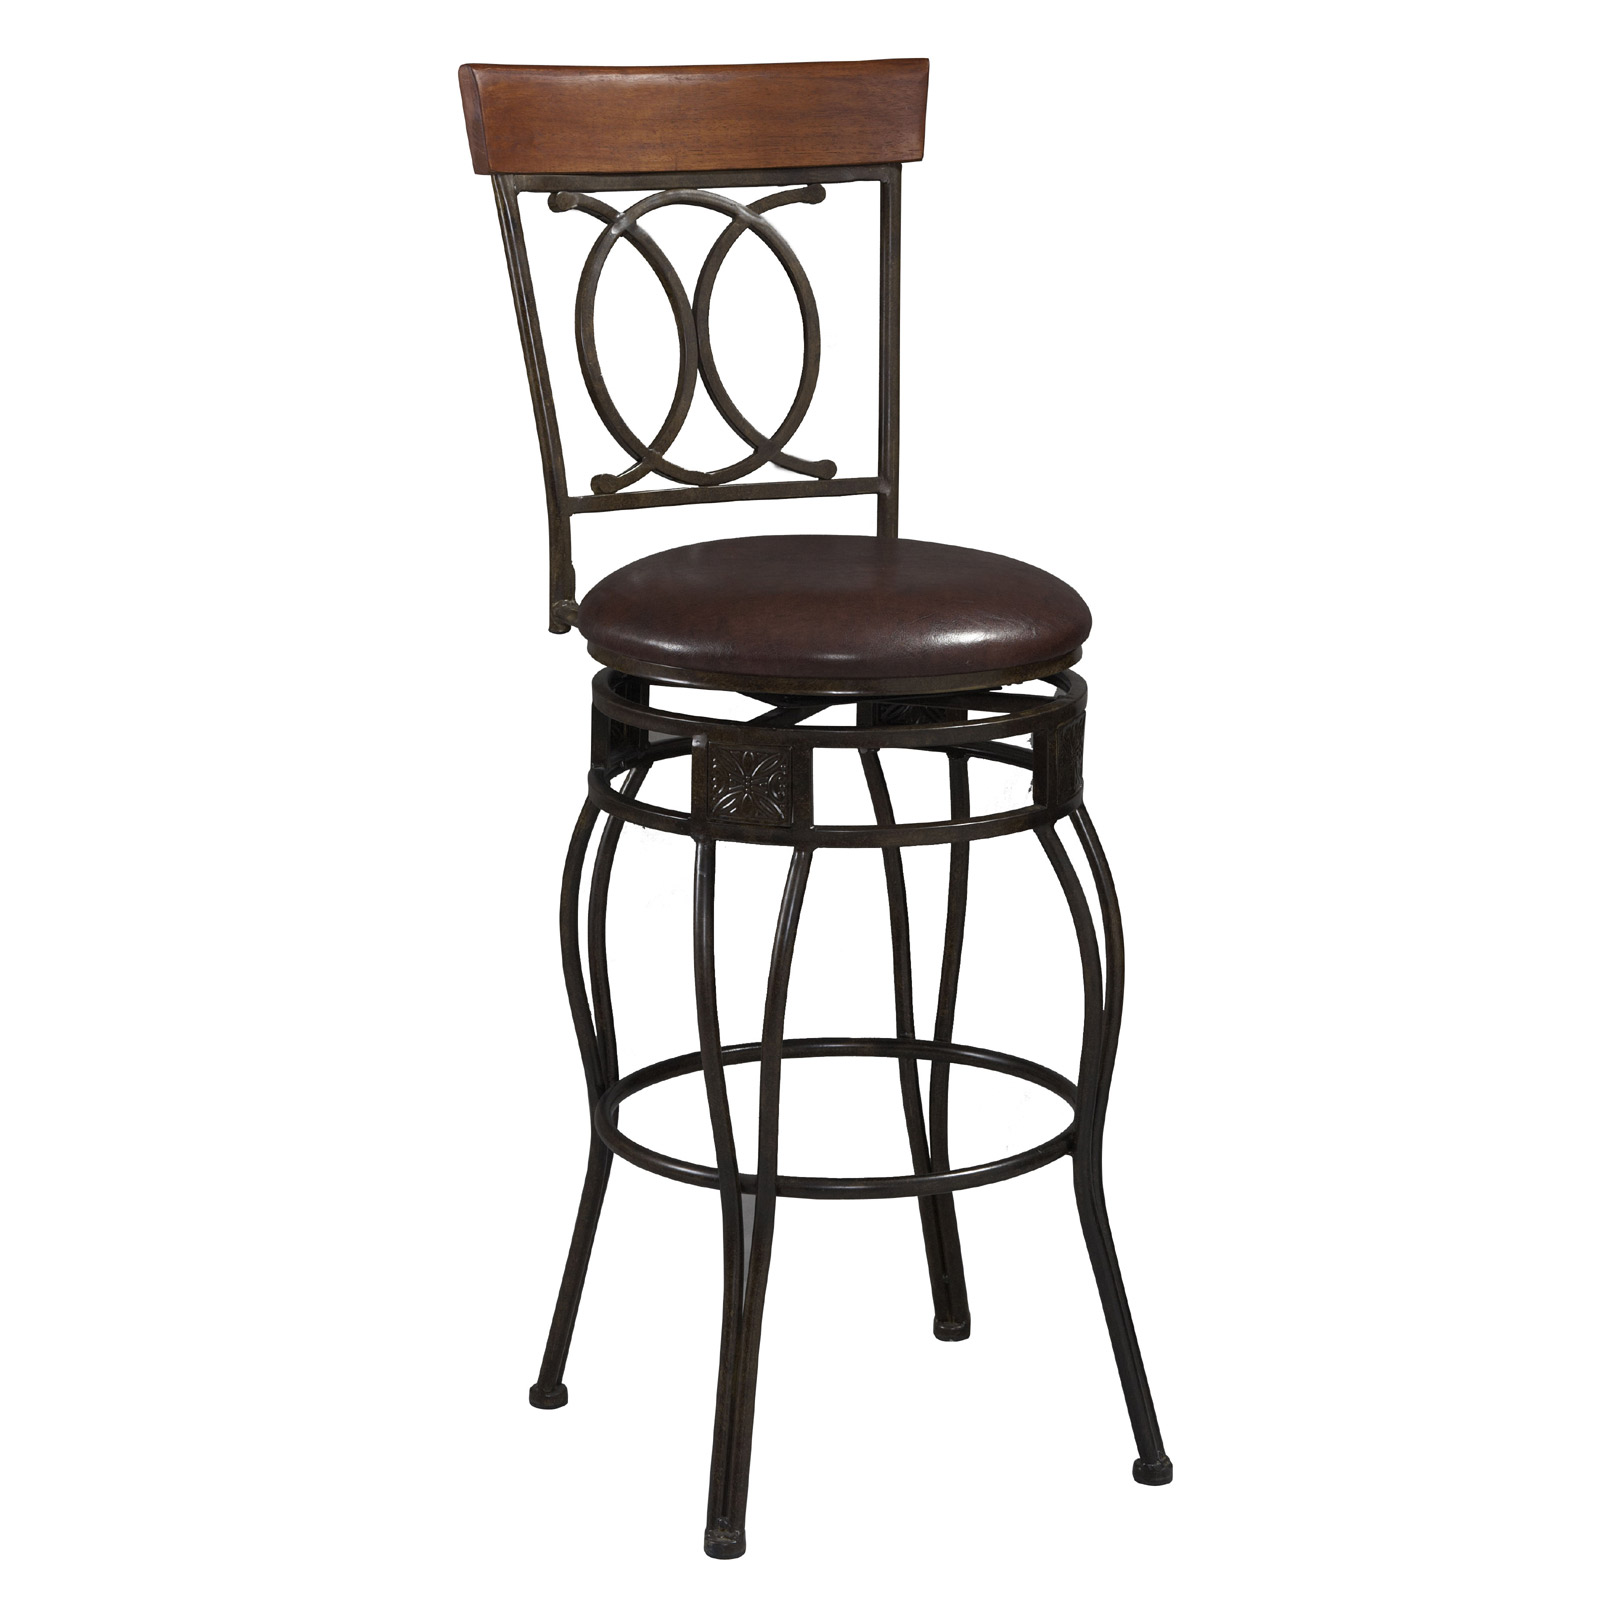 Matte Bronze Bar Stool With Back By Linon Home Decor In